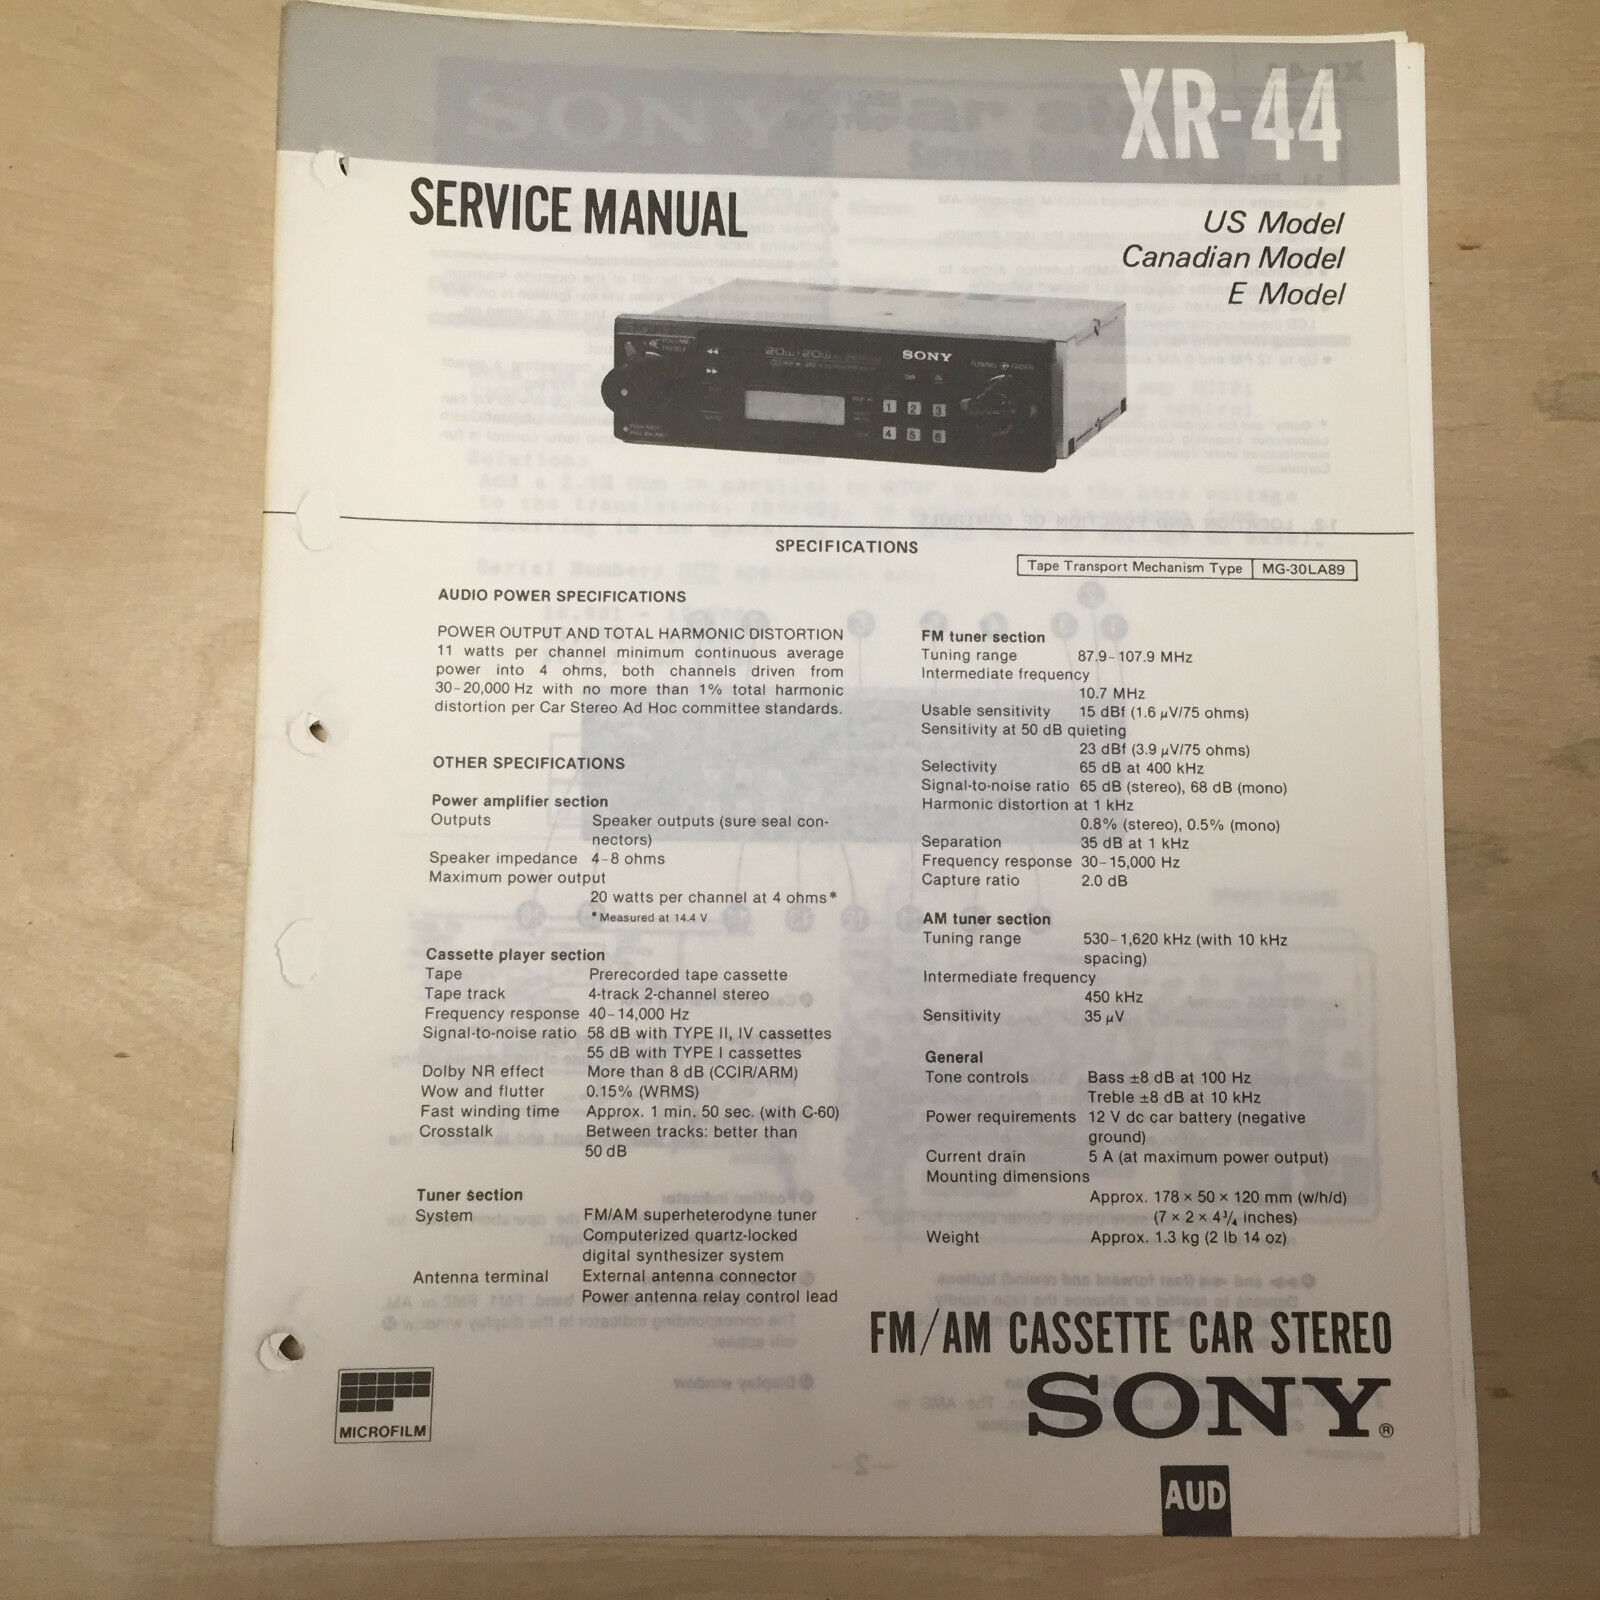 Sony Xr Ca630x Wiring Diagram Page 3 And Schematics Fast Track Diagrams Service Manual For The 44 Cette Player Radio Car Stereo Rh Pic Com